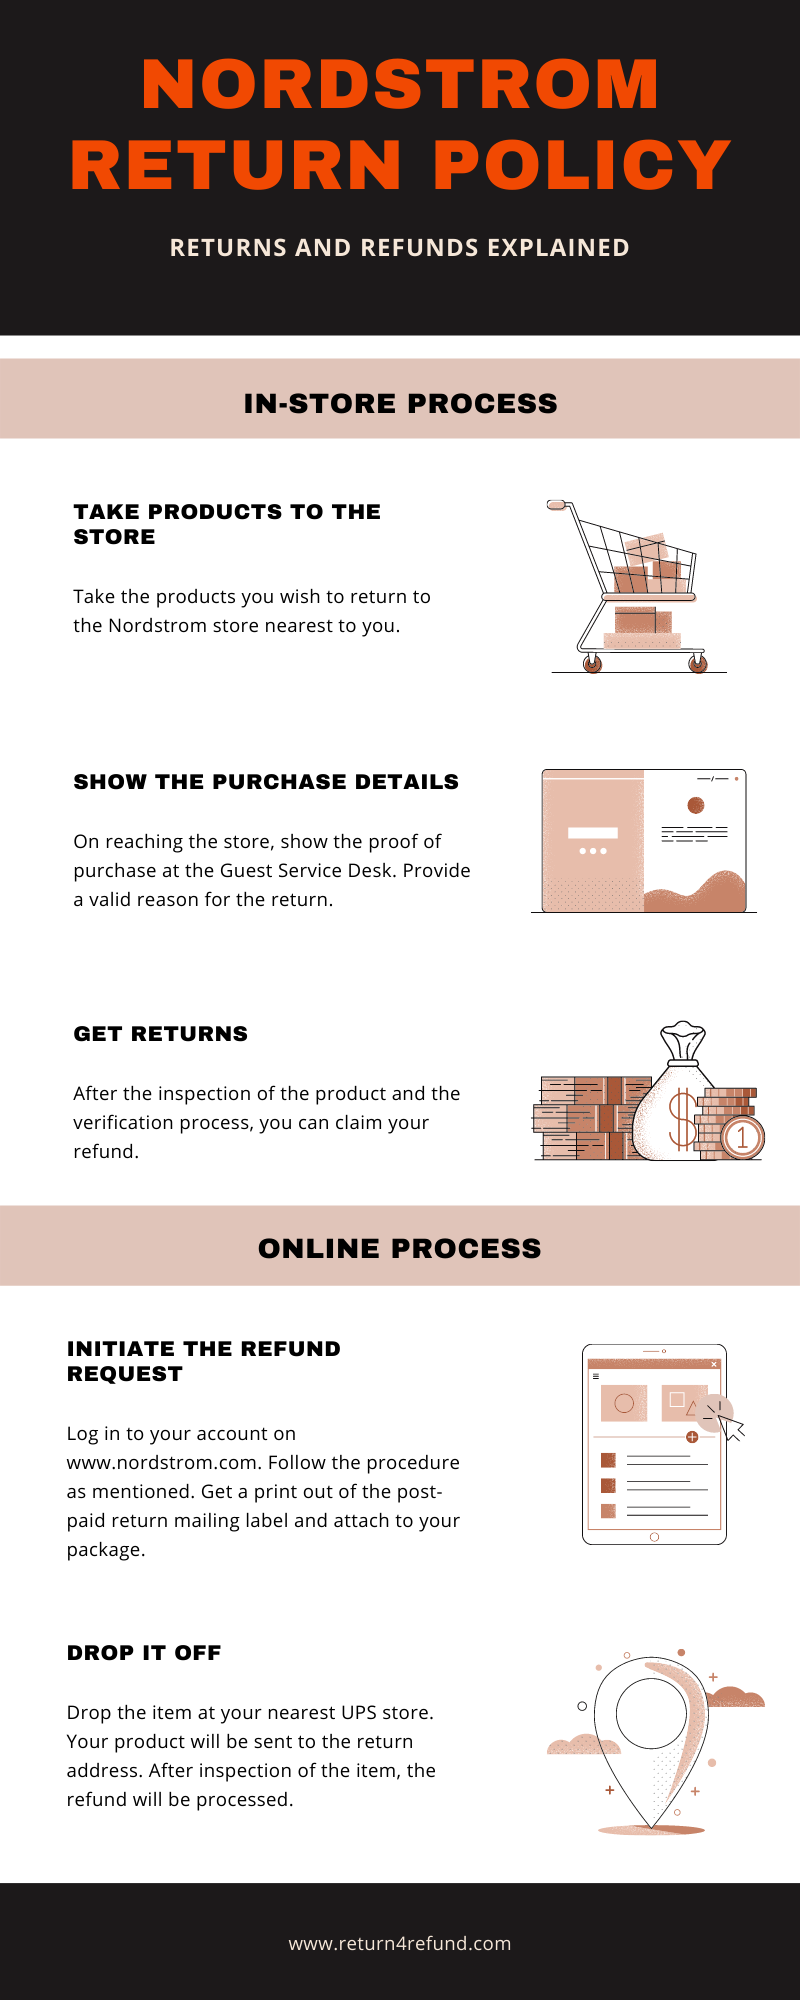 Nordstrom Return Policy infographic